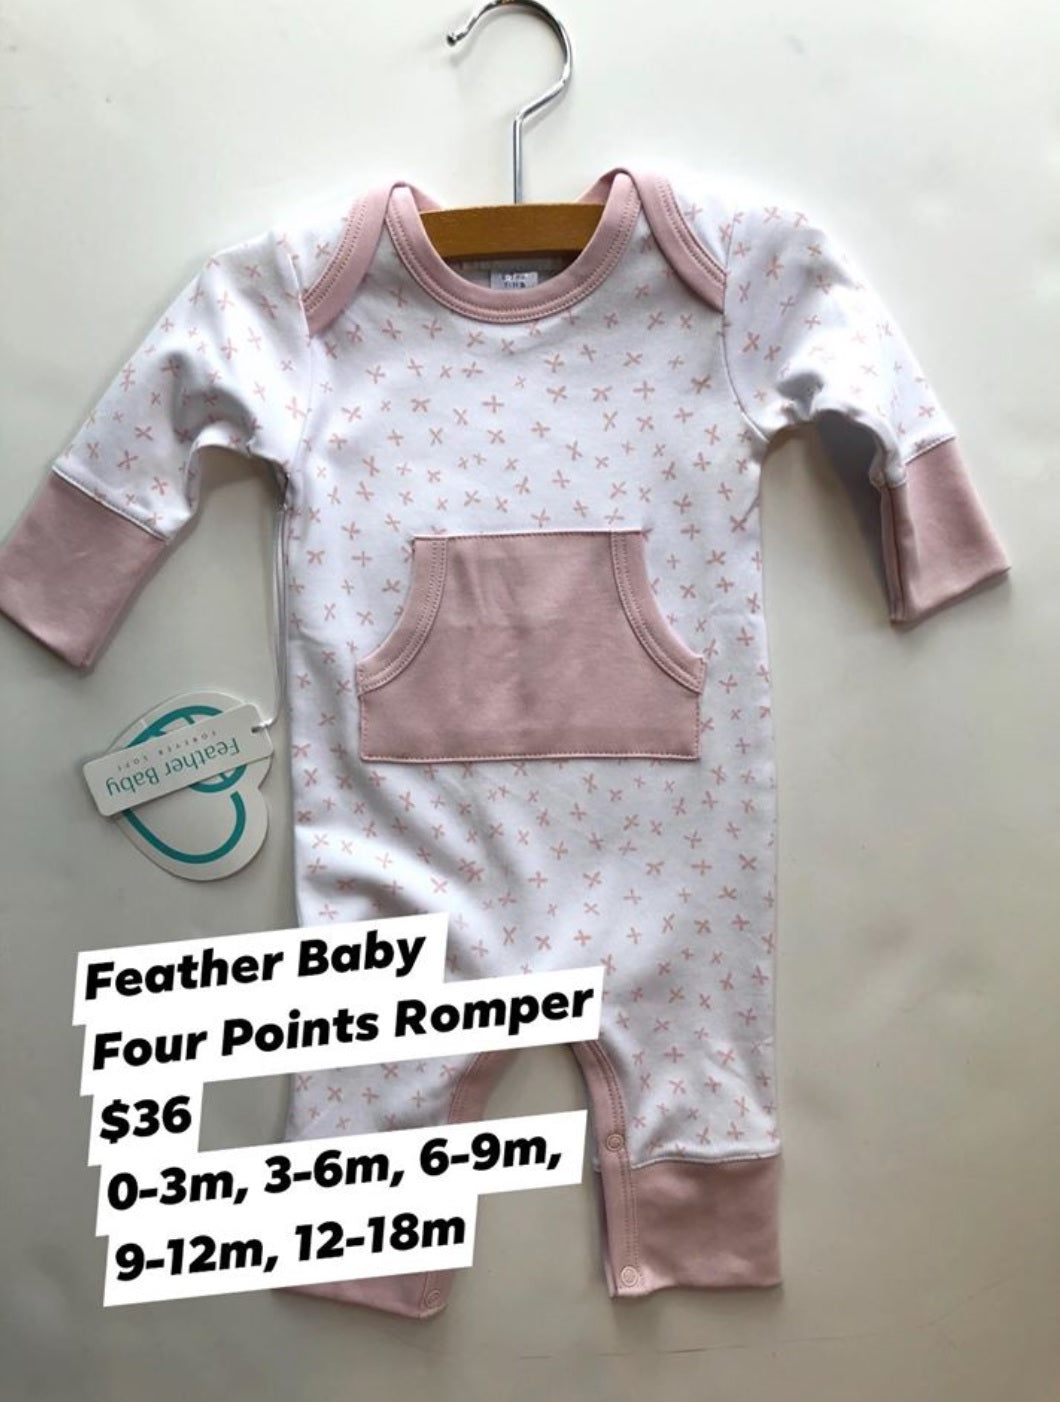 Feather Baby Kangaroo Romper - Pink Points on White